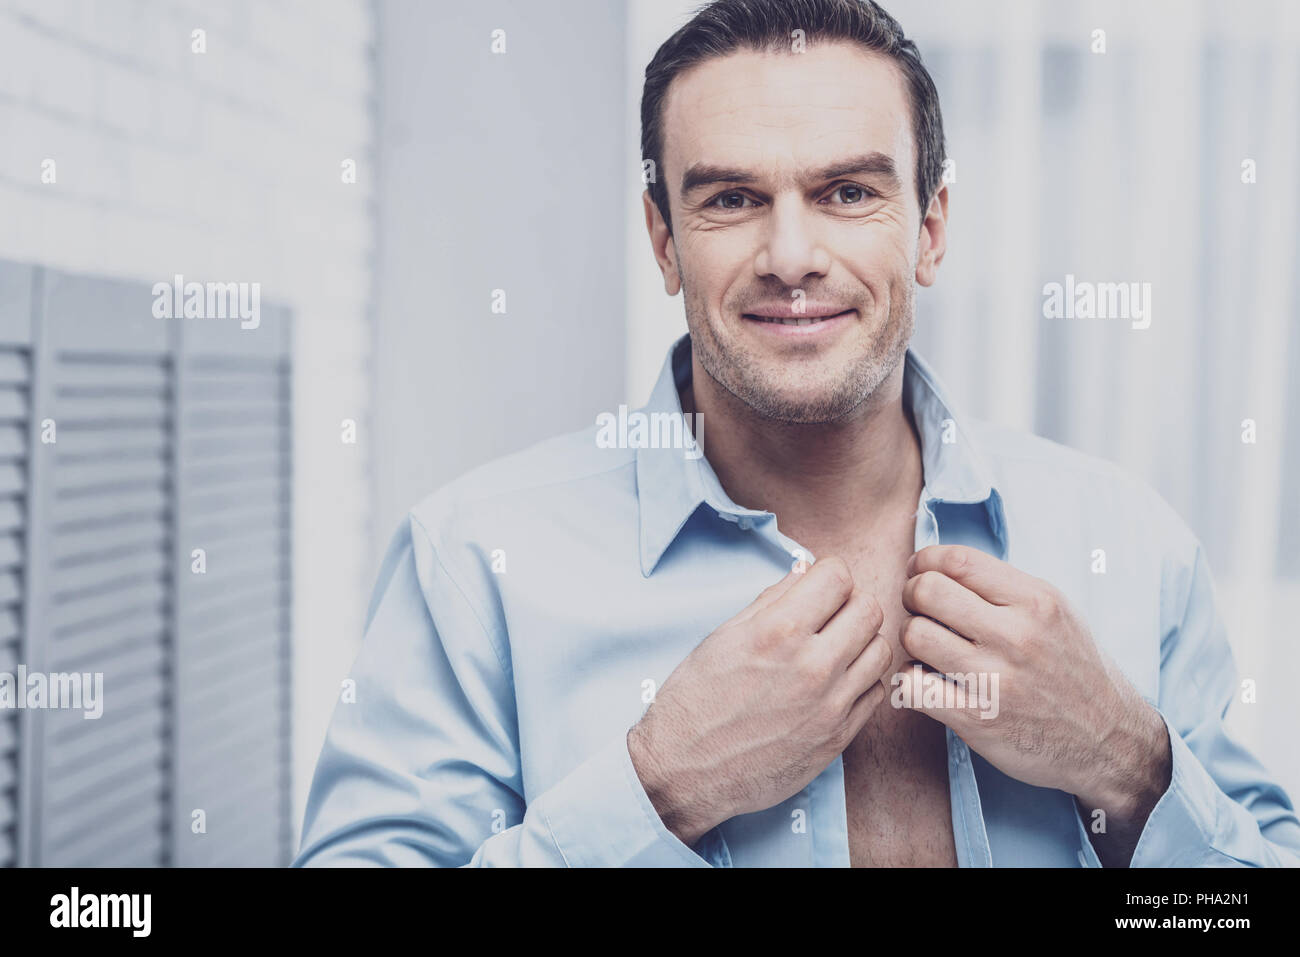 Personable businessman buttoning the shirt - Stock Image